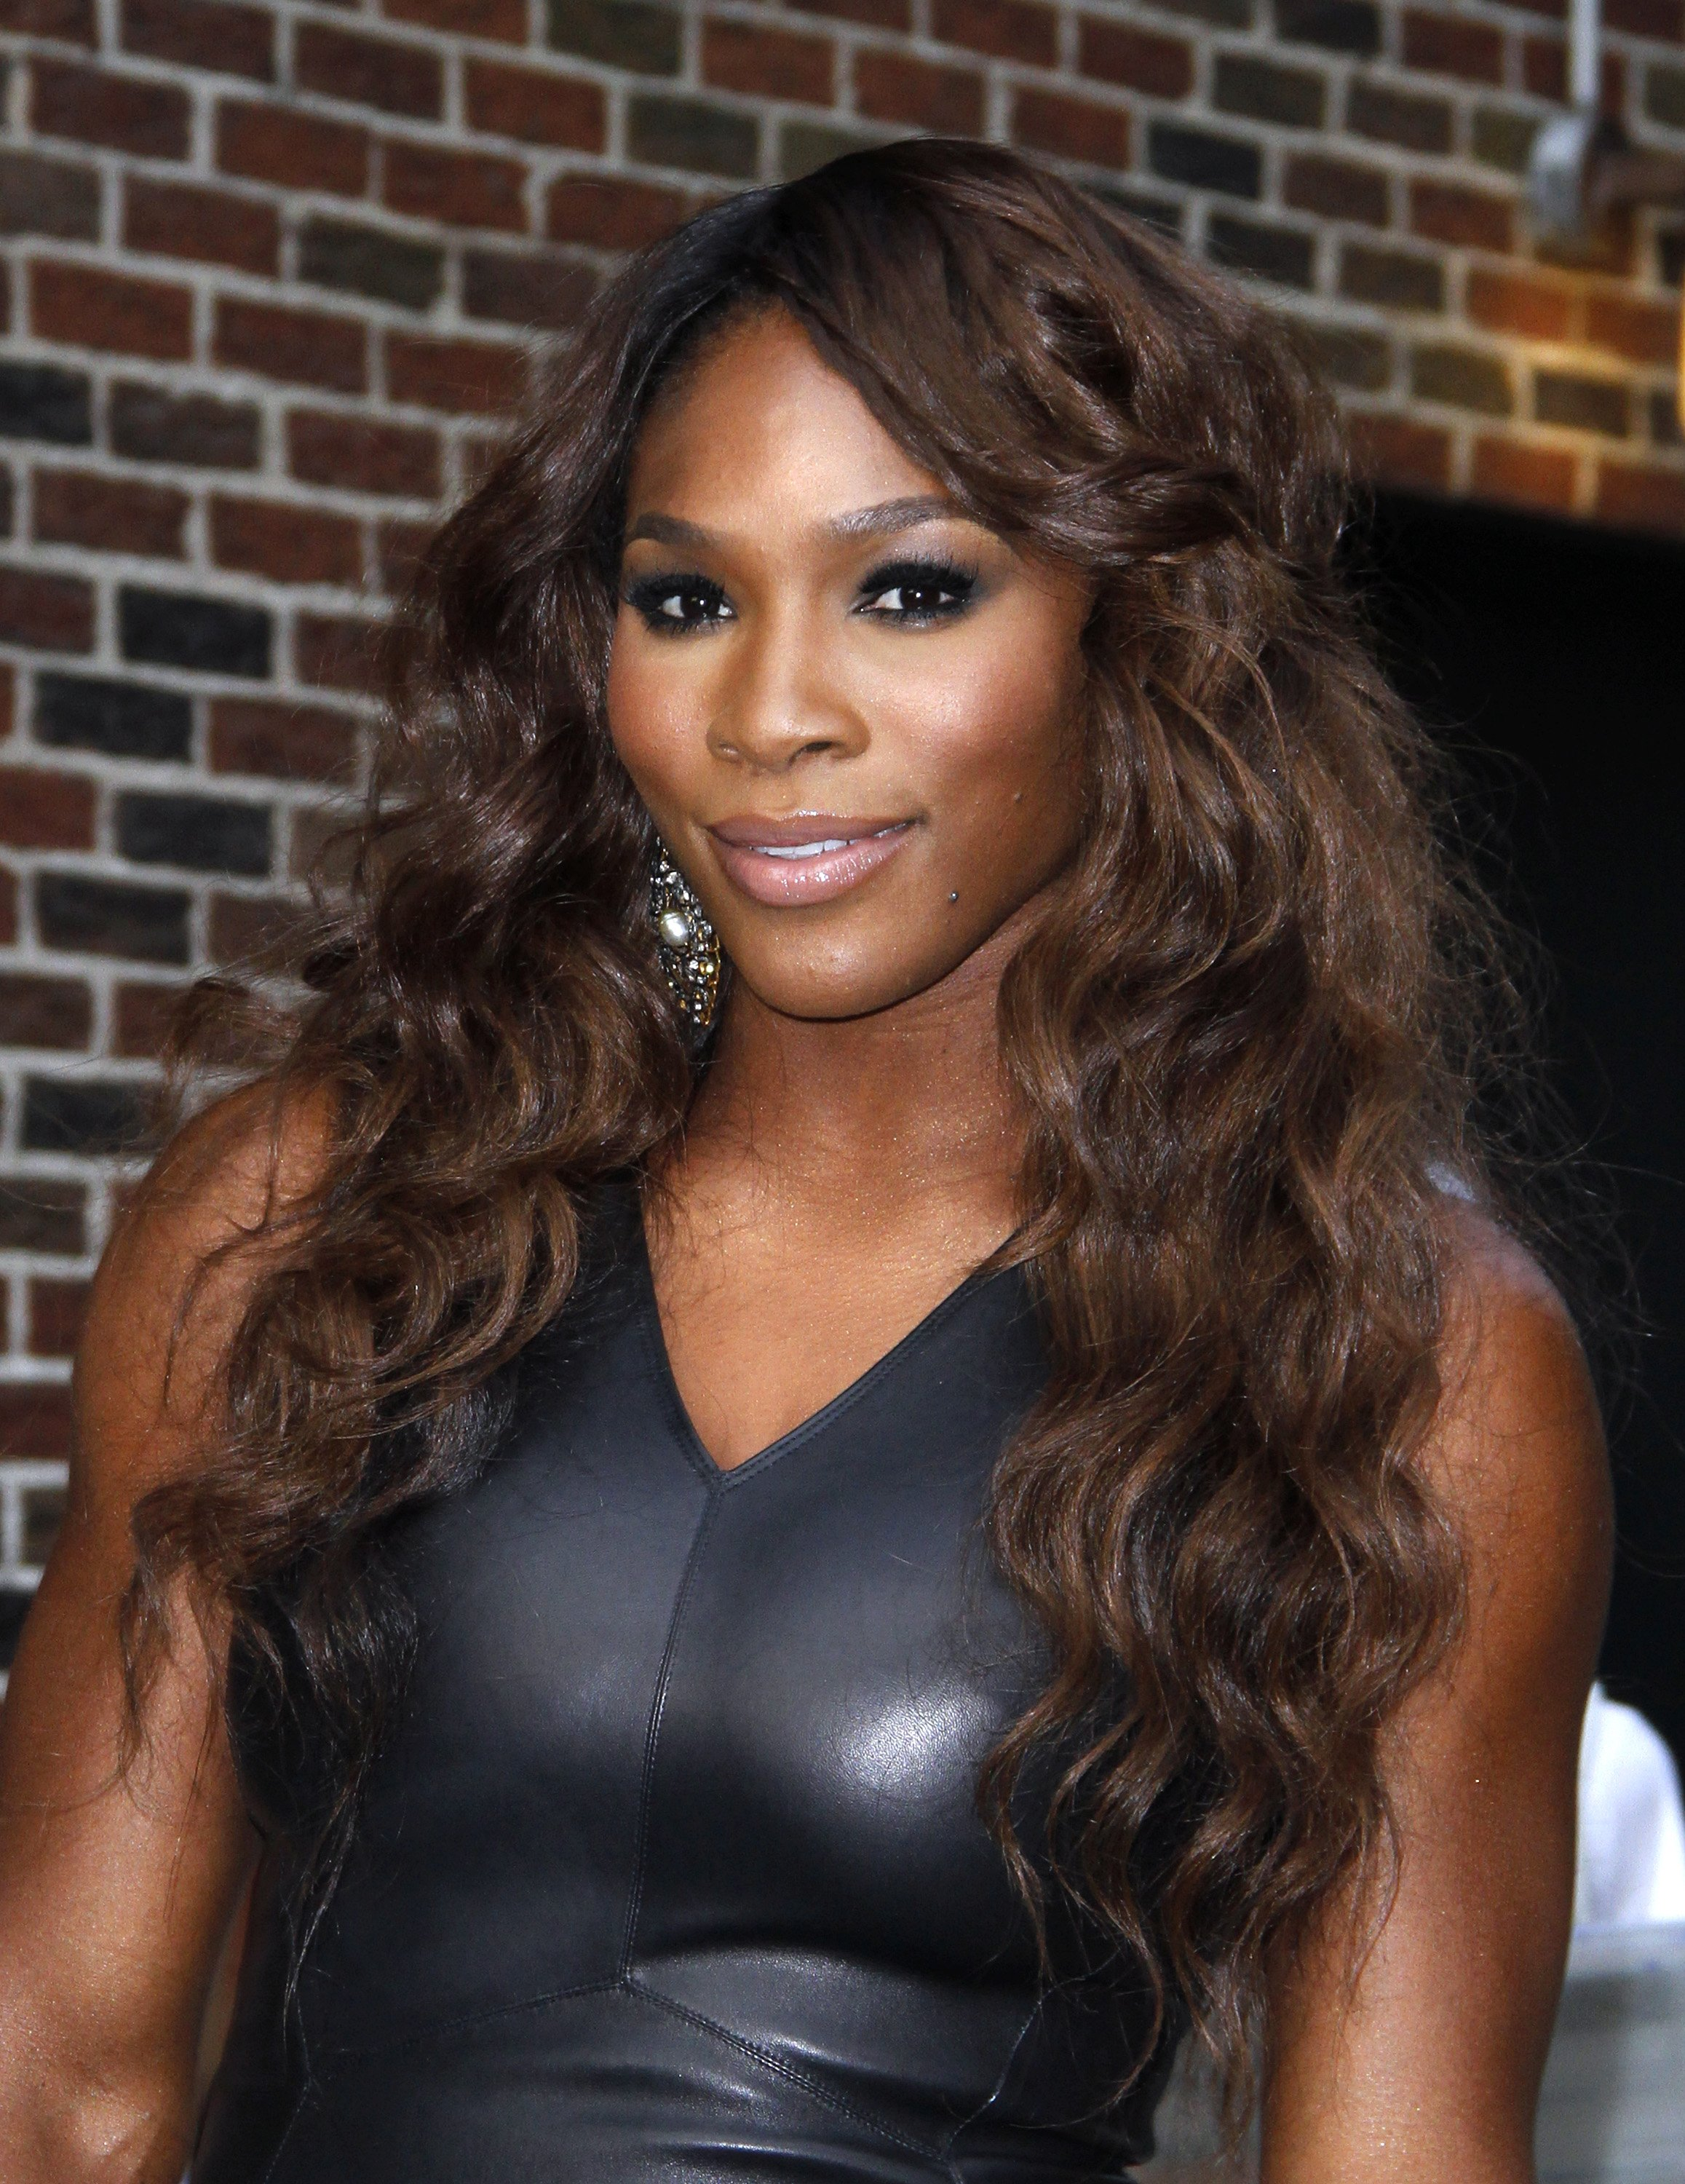 """Serena Williams after the """"Late Show with David Letterman"""" in New York City, 2013.   Source: Getty Images"""